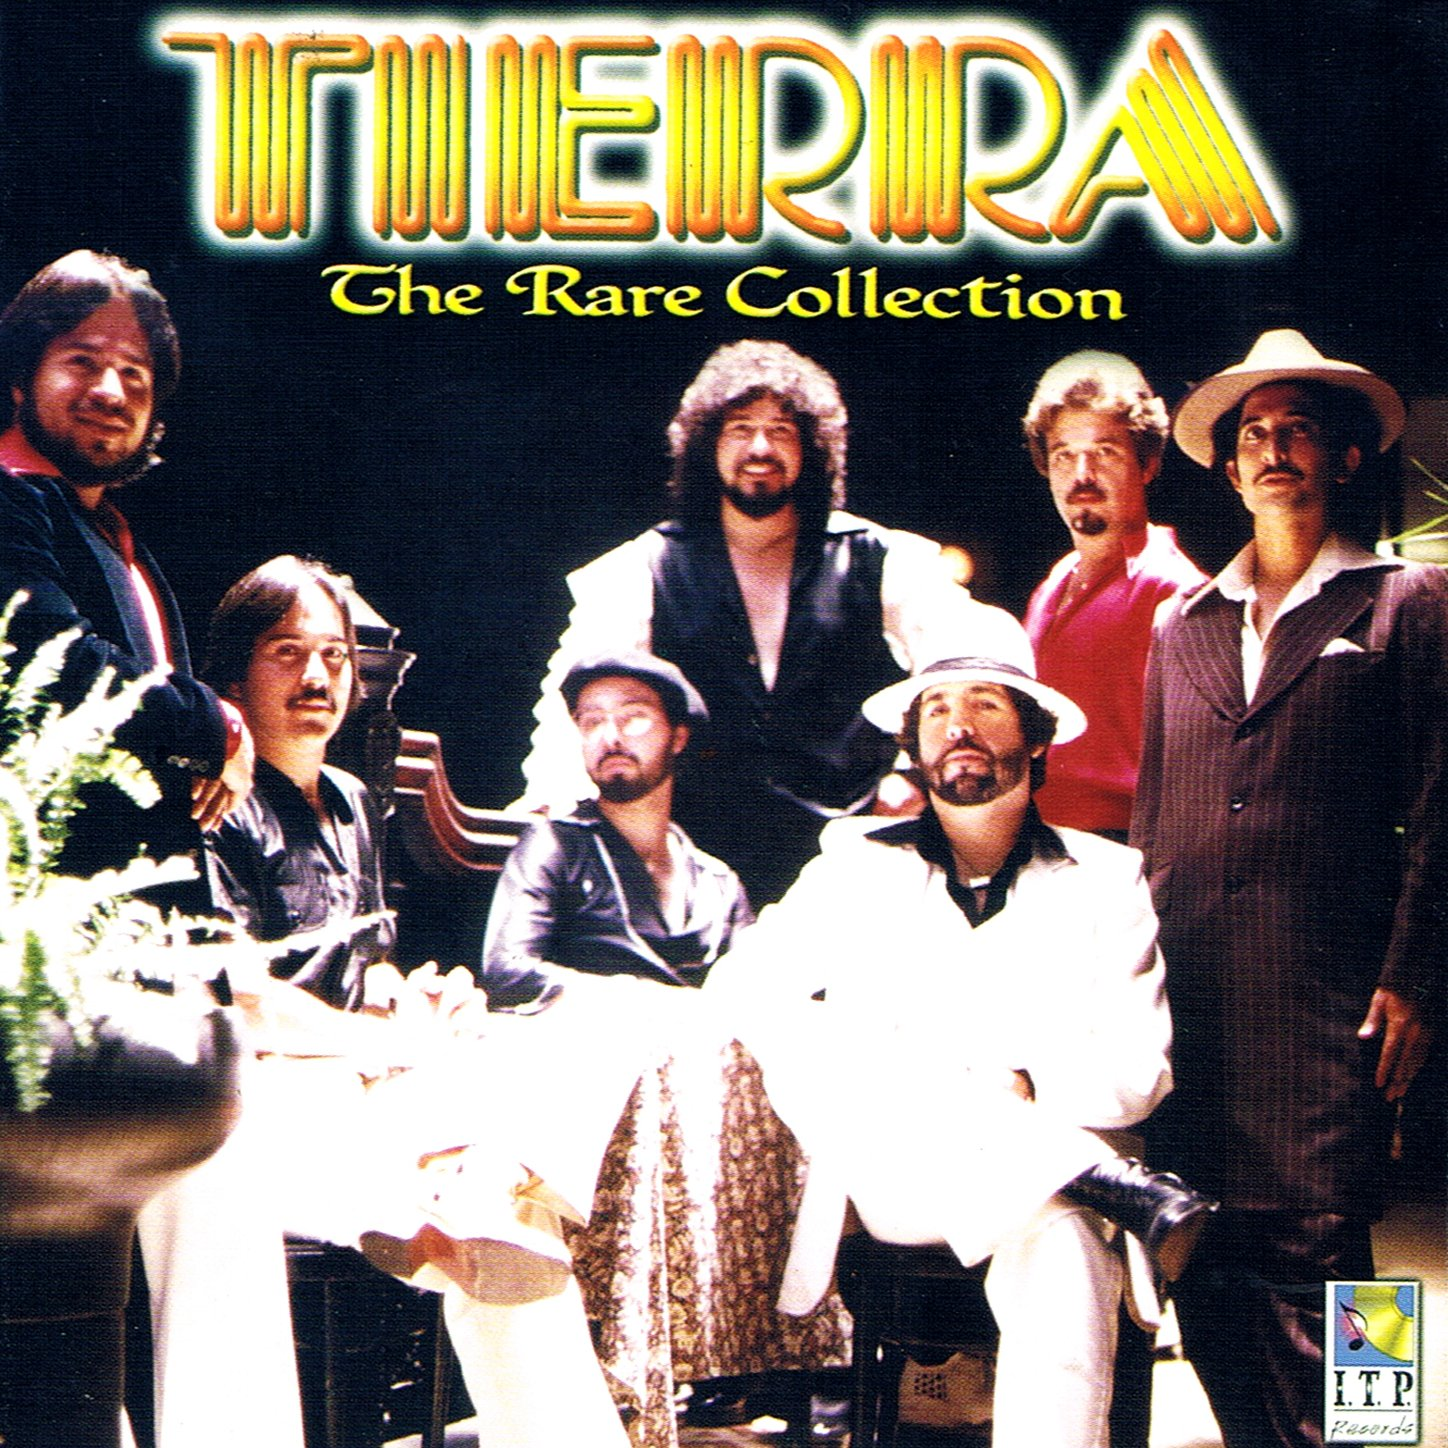 Tierra – The Rare Collection (2003) [FLAC]